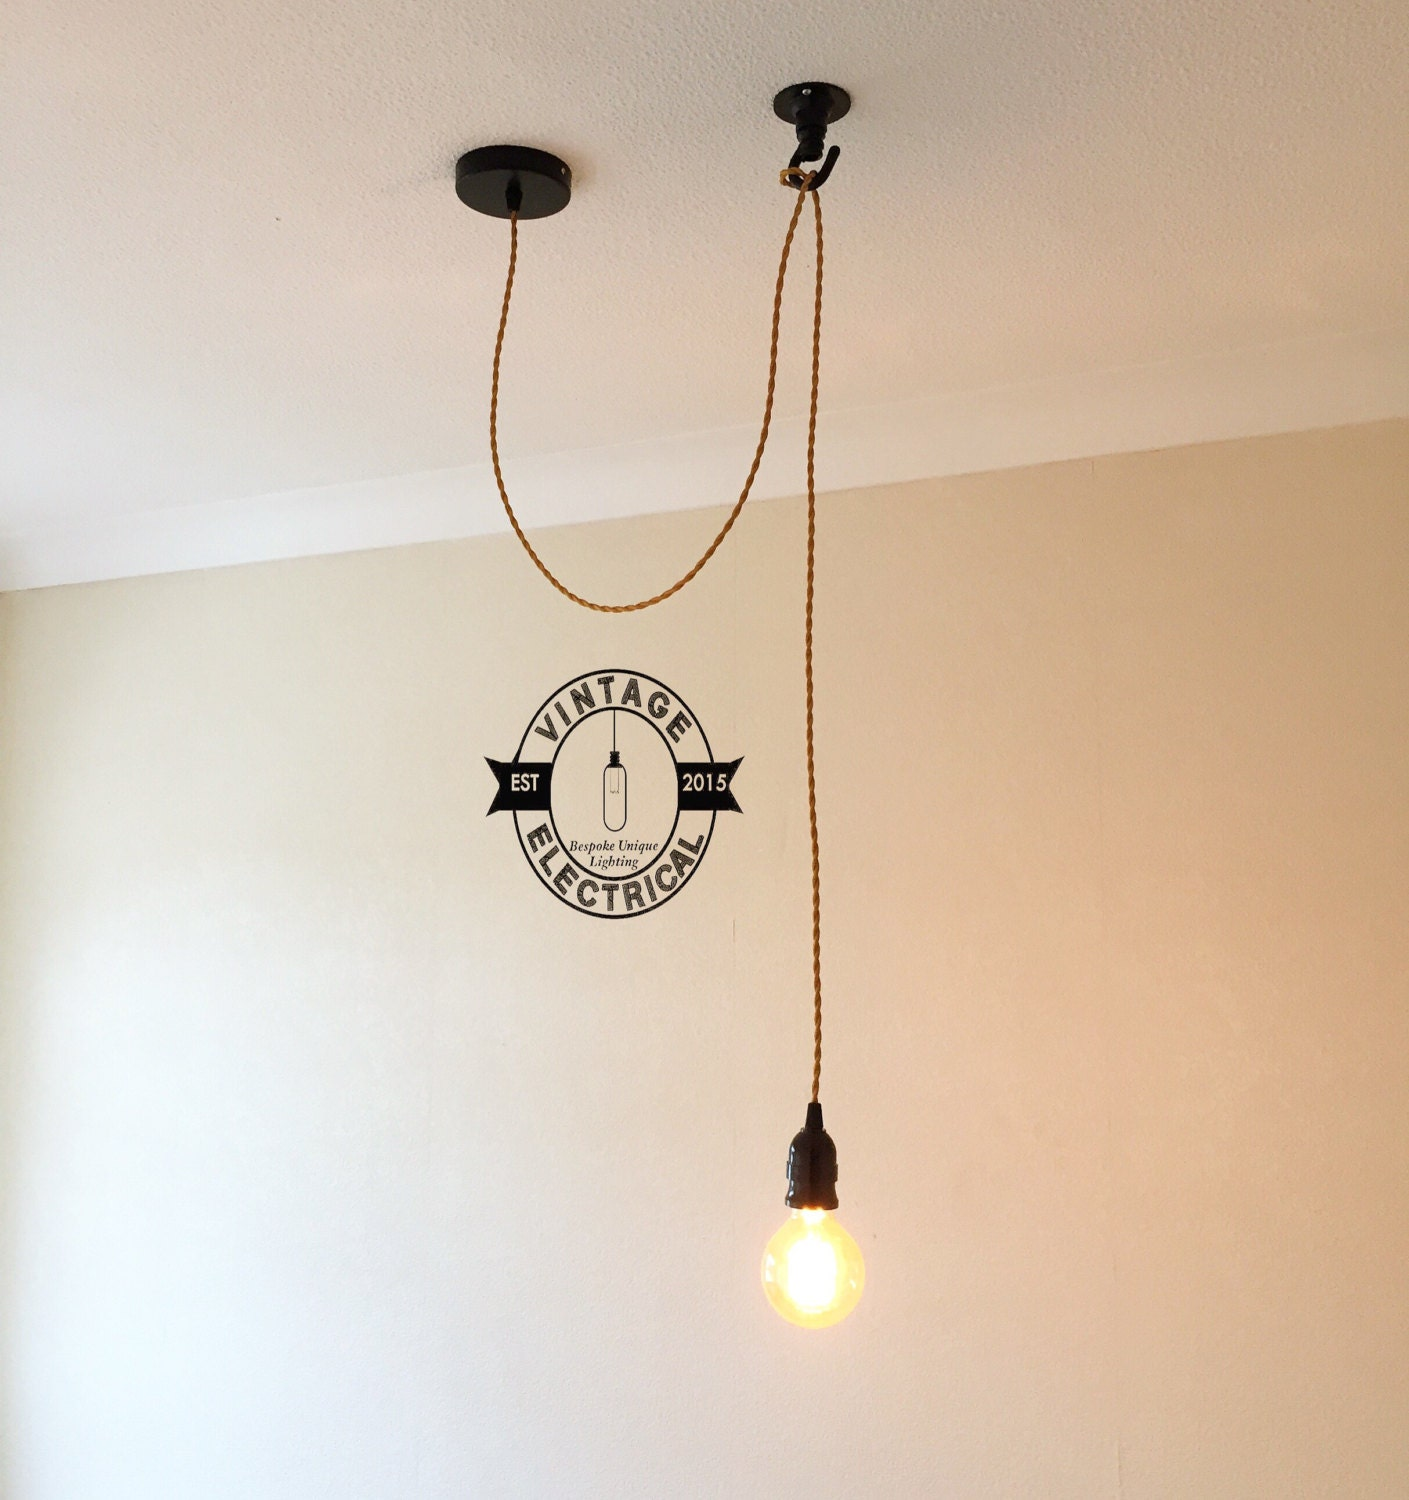 The martham single drop light ceiling rose hanging light fitting the martham single drop light ceiling rose hanging light fitting vintage filament lamp cafe bar restaurant pendant cord twisted cable urban mozeypictures Choice Image